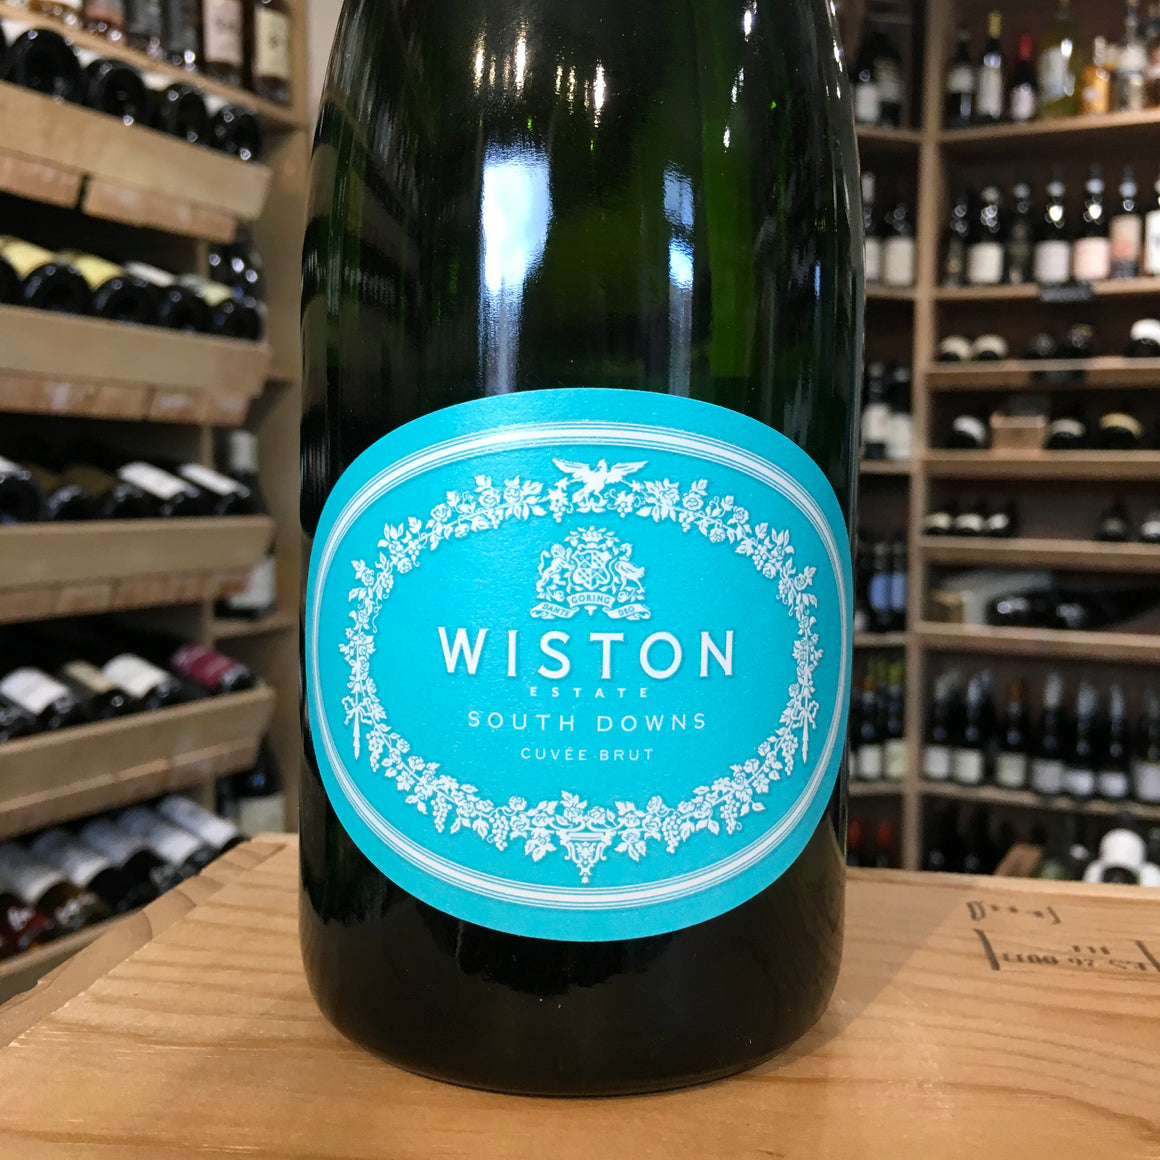 Wiston Estate Cuvee Brut 2009 - Butlers Wine Cellar Brighton